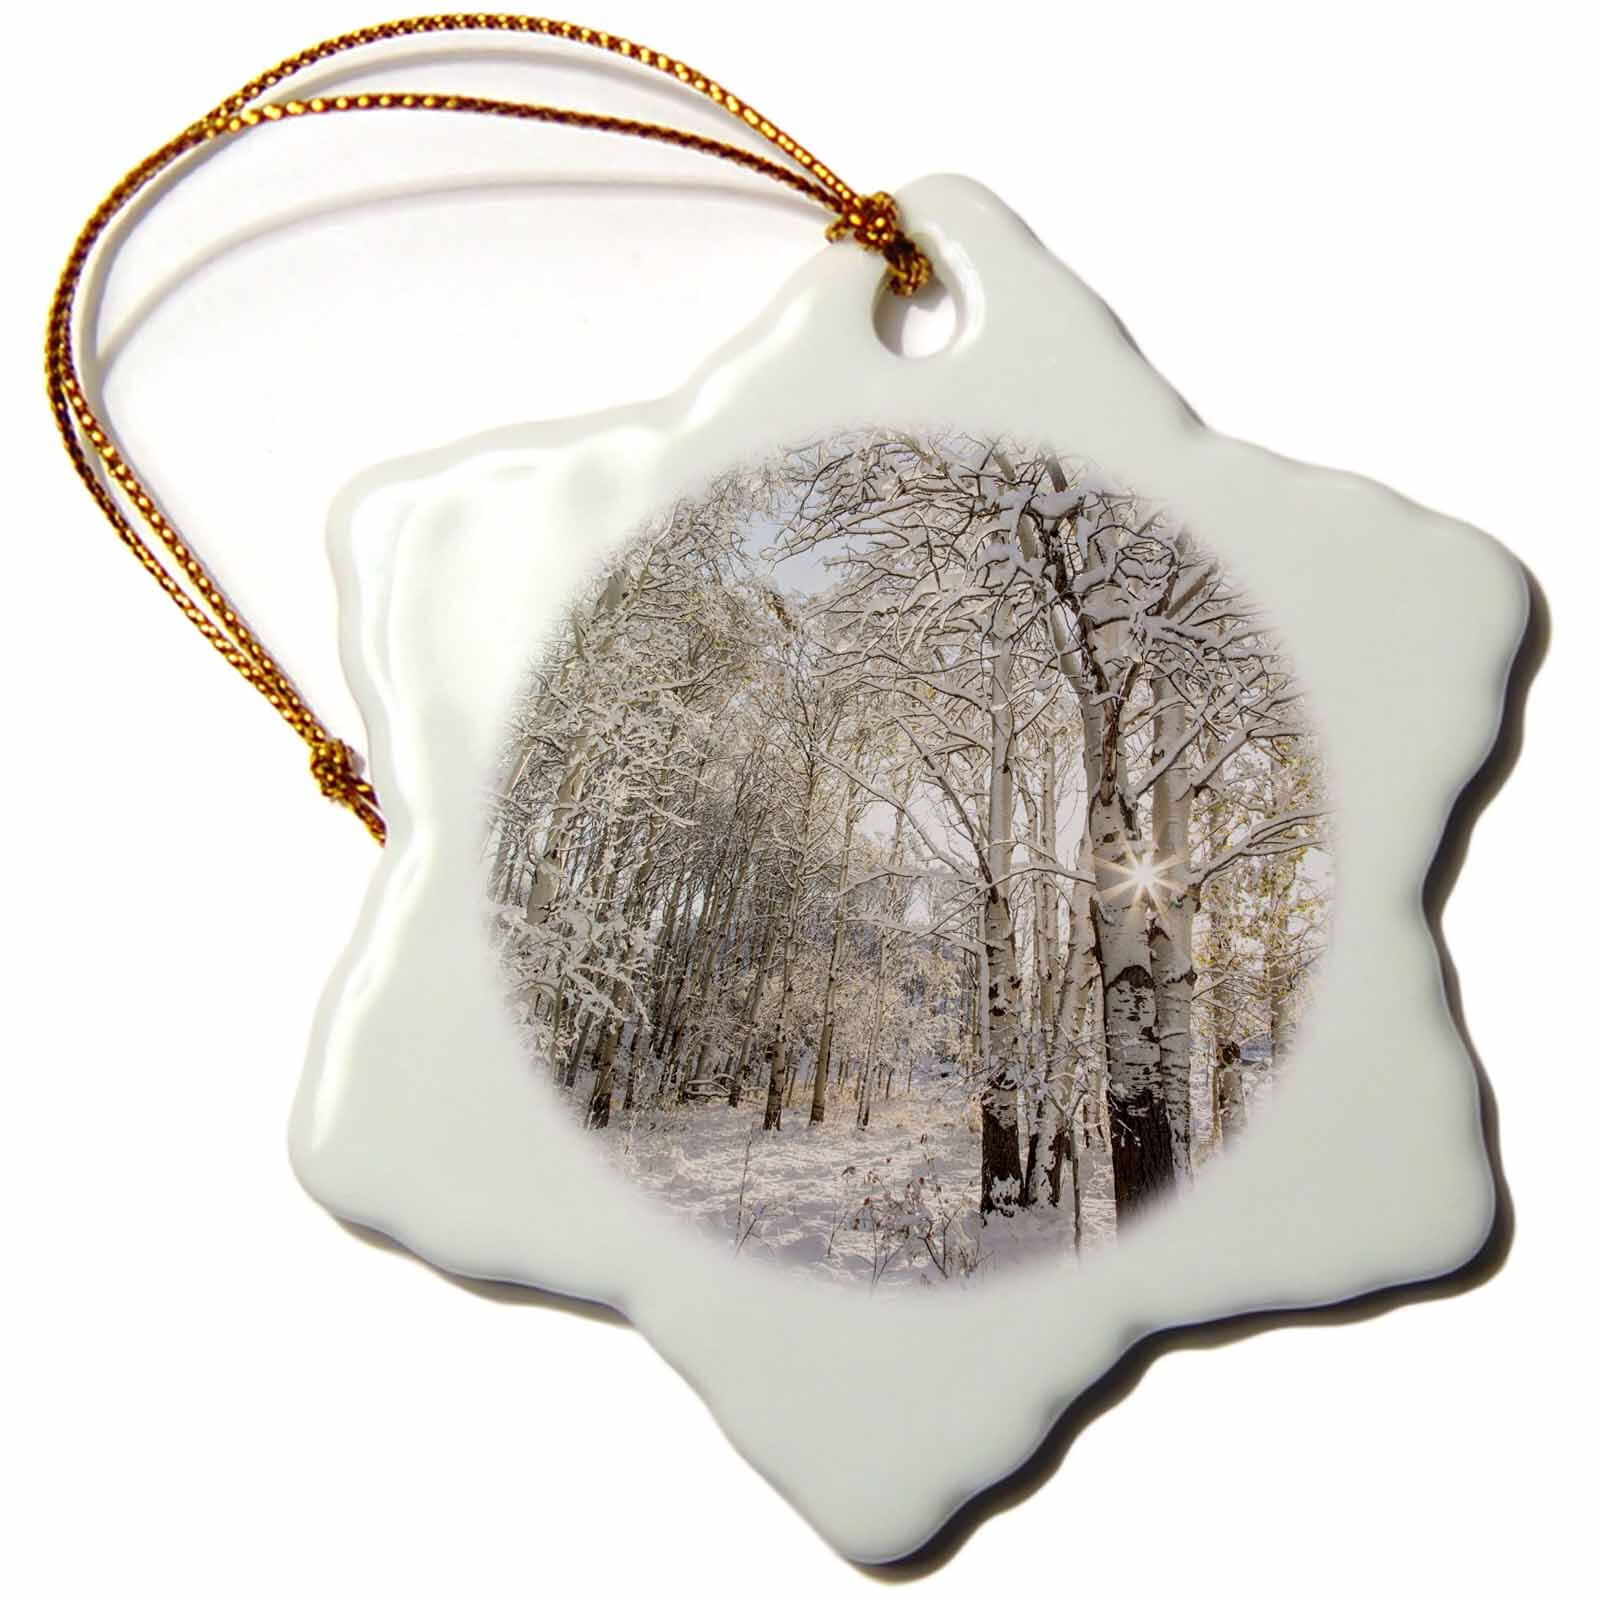 Rustic White Christmas Ornaments You Ll Love In 2021 Wayfair